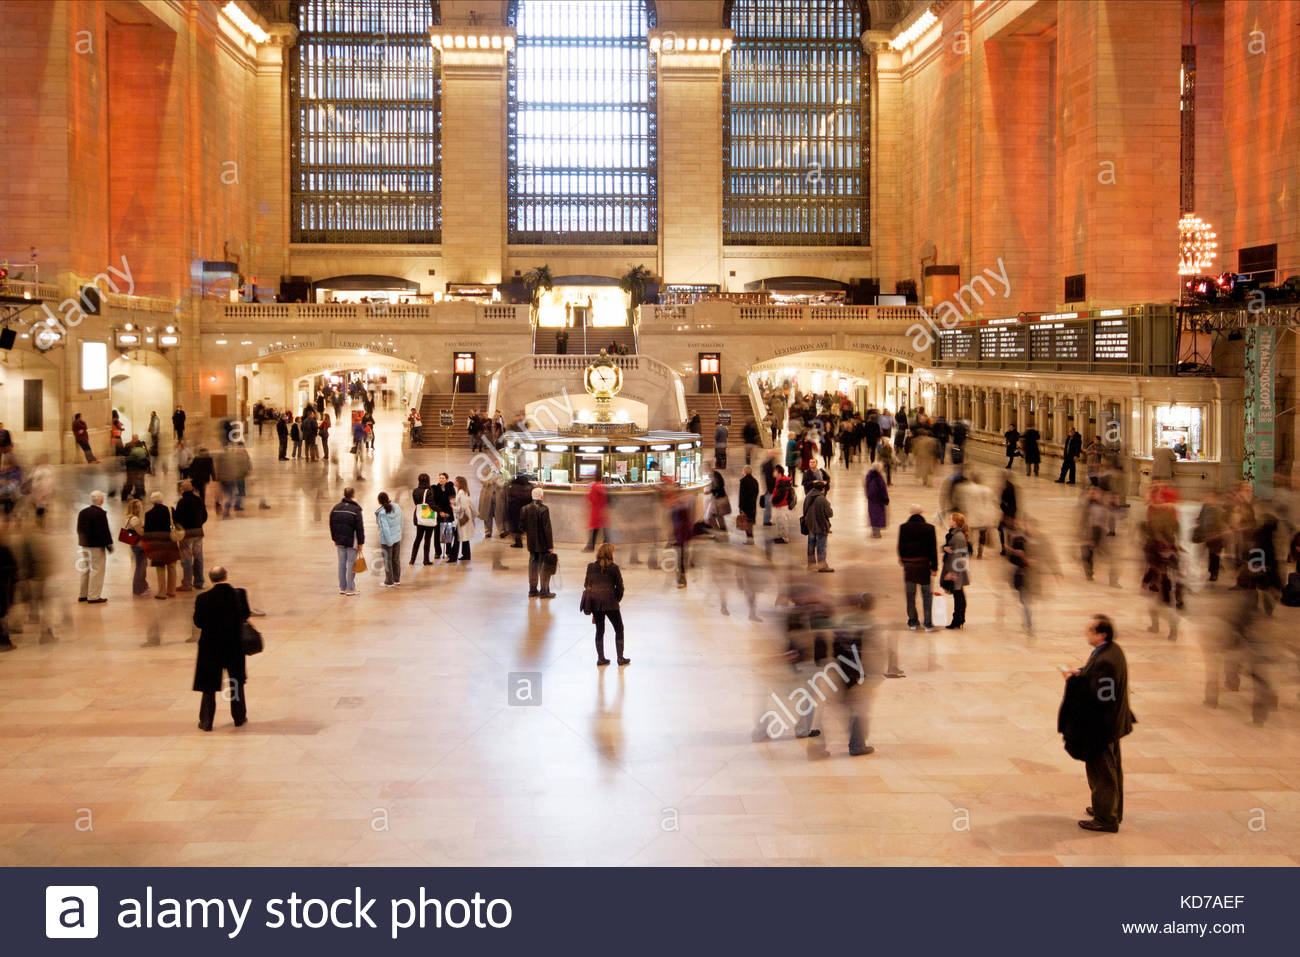 The busy  concourse or main hallway at Grand Central Terminal, Manhattan, New york. People are blurred as they move - Stock Image